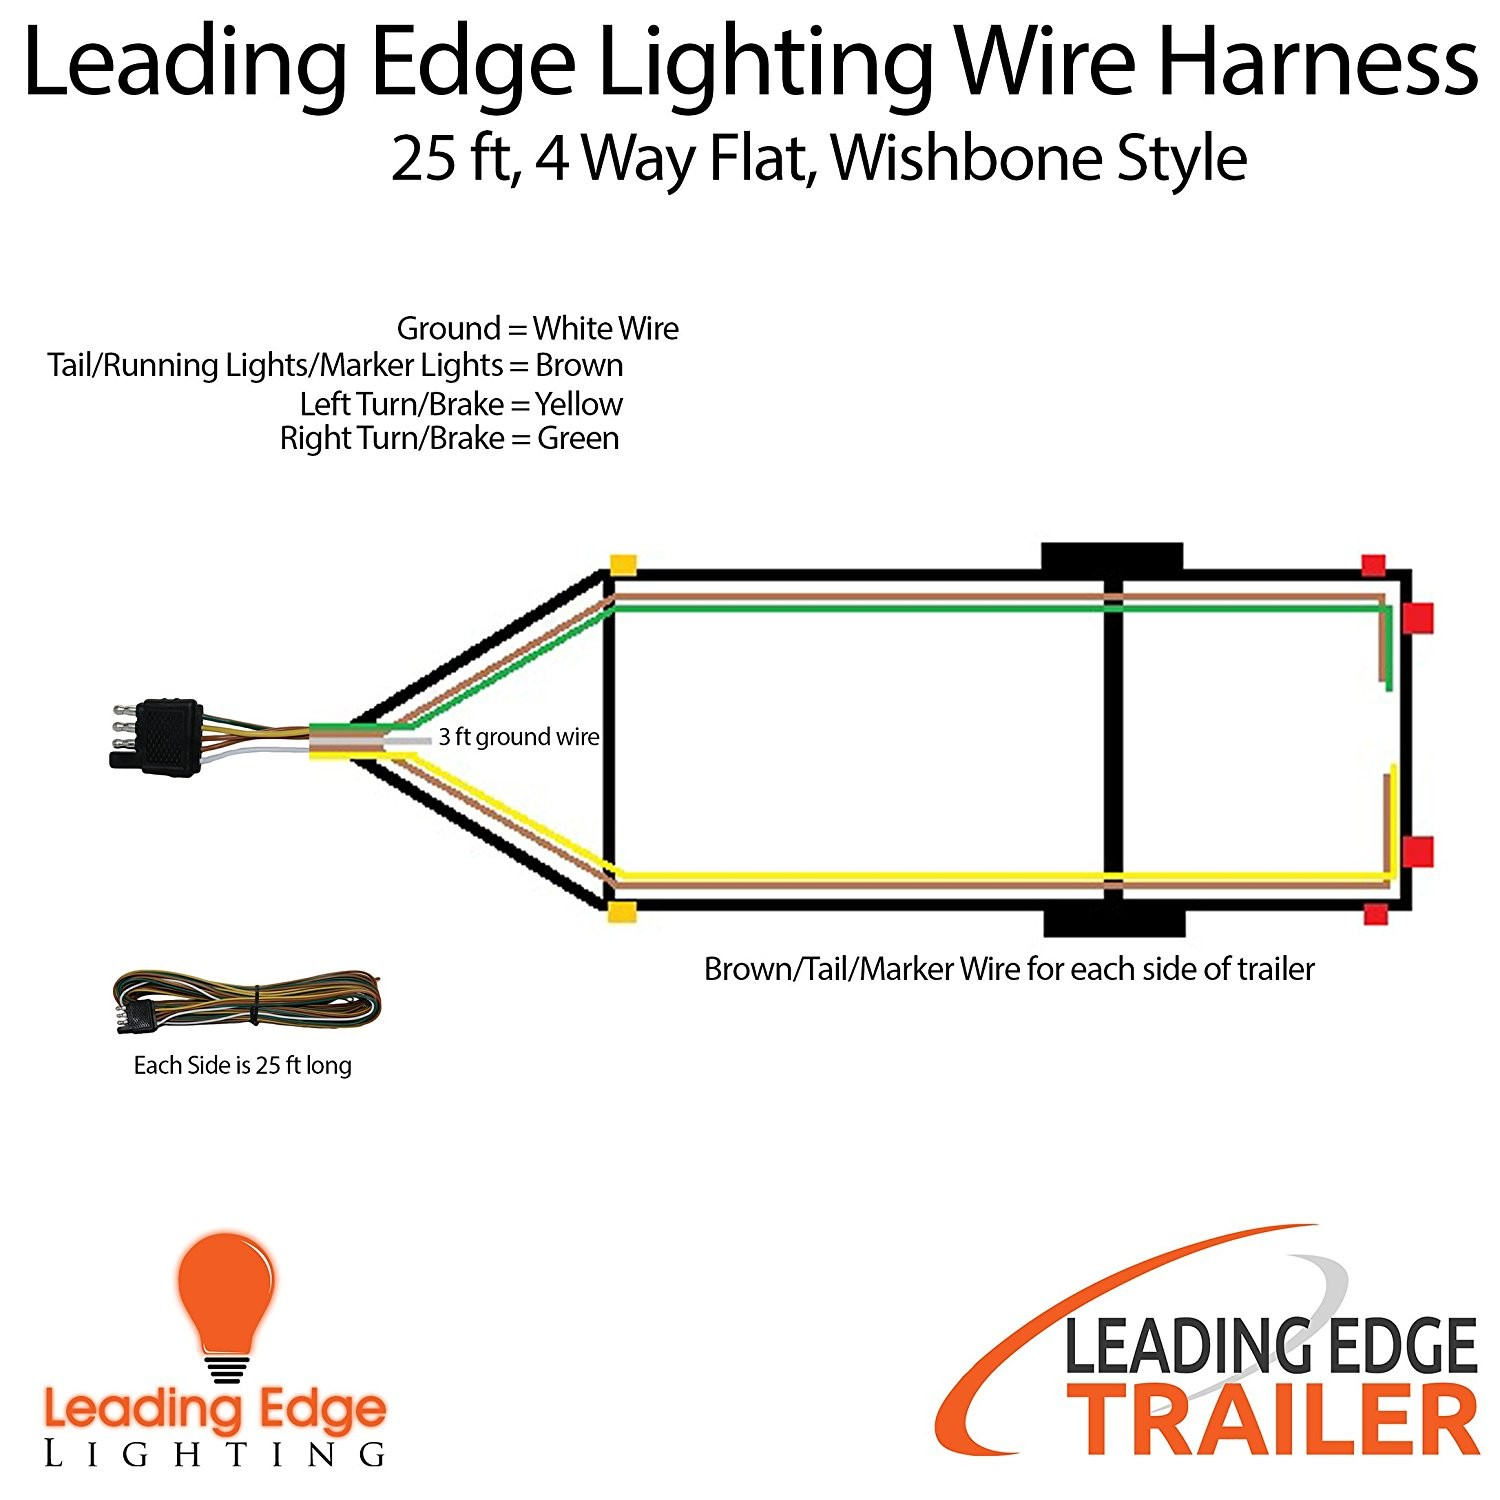 7 Wire Trailer Harness Diagram Best 7 Way Trailer Connector Wiring Diagram Everything You Of 7 Wire Trailer Harness Diagram